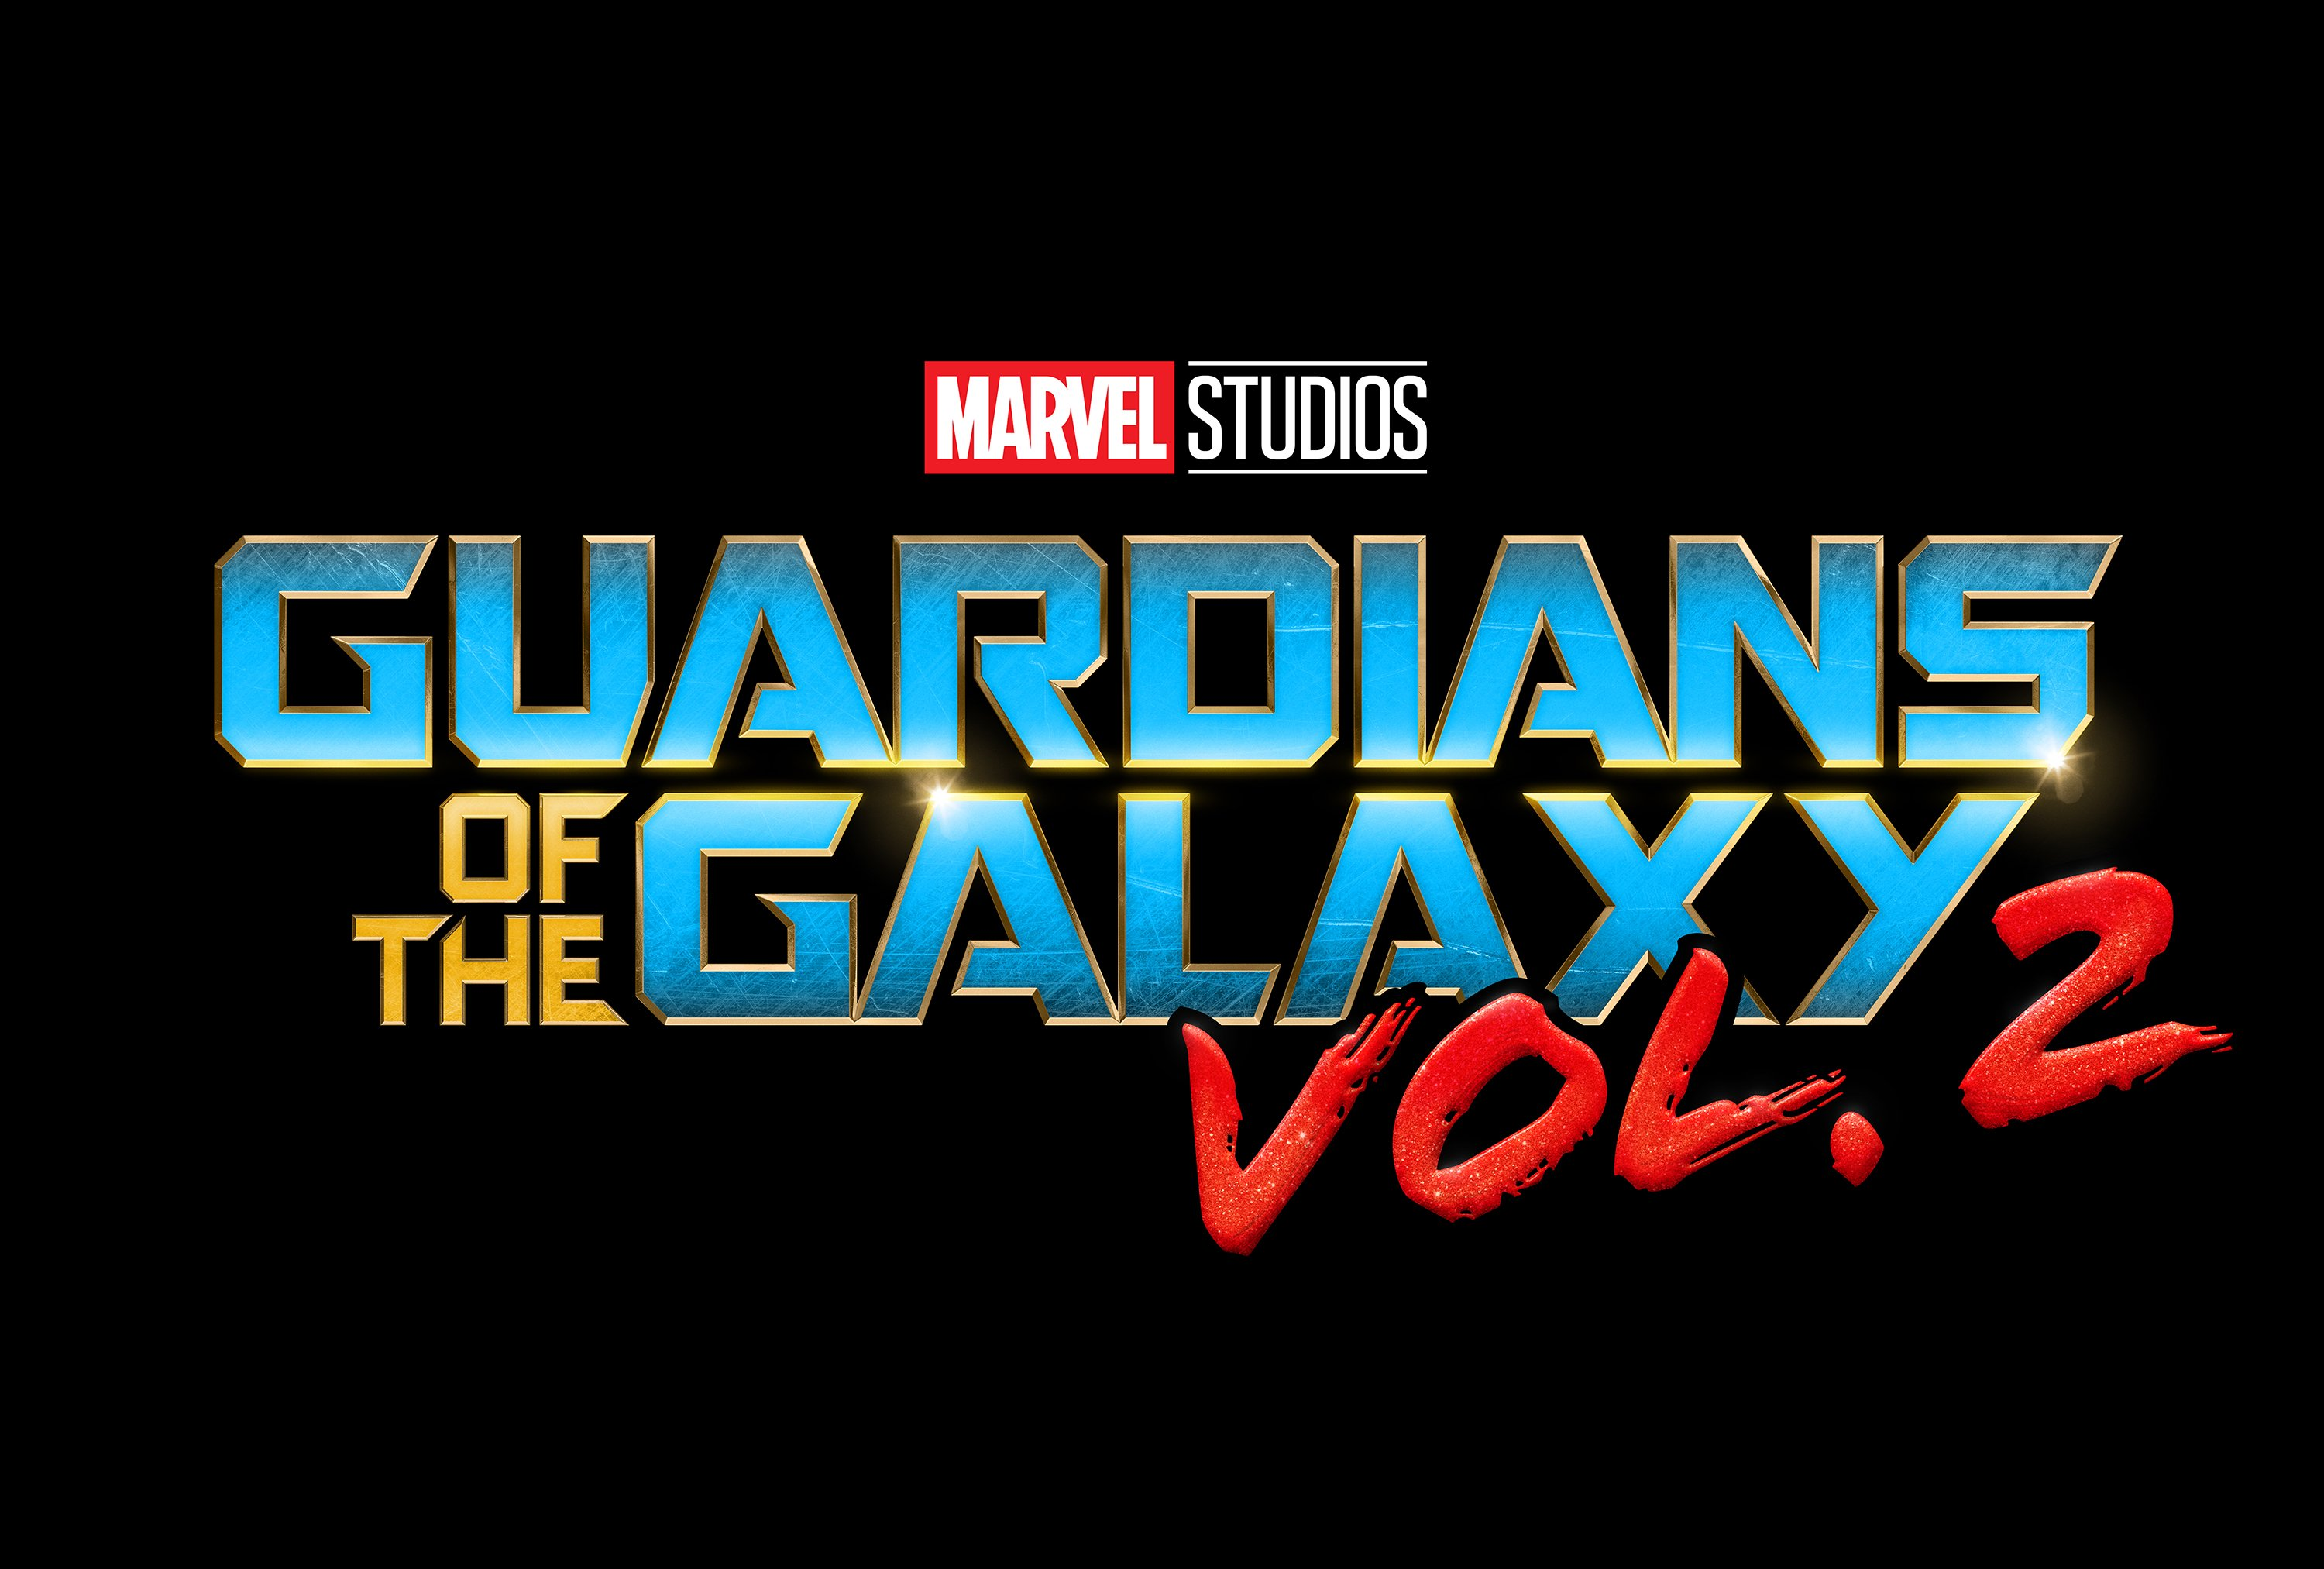 Disney/Marvel Releases Guardians of the Galaxy Vol 2 Sneak Peek Trailer